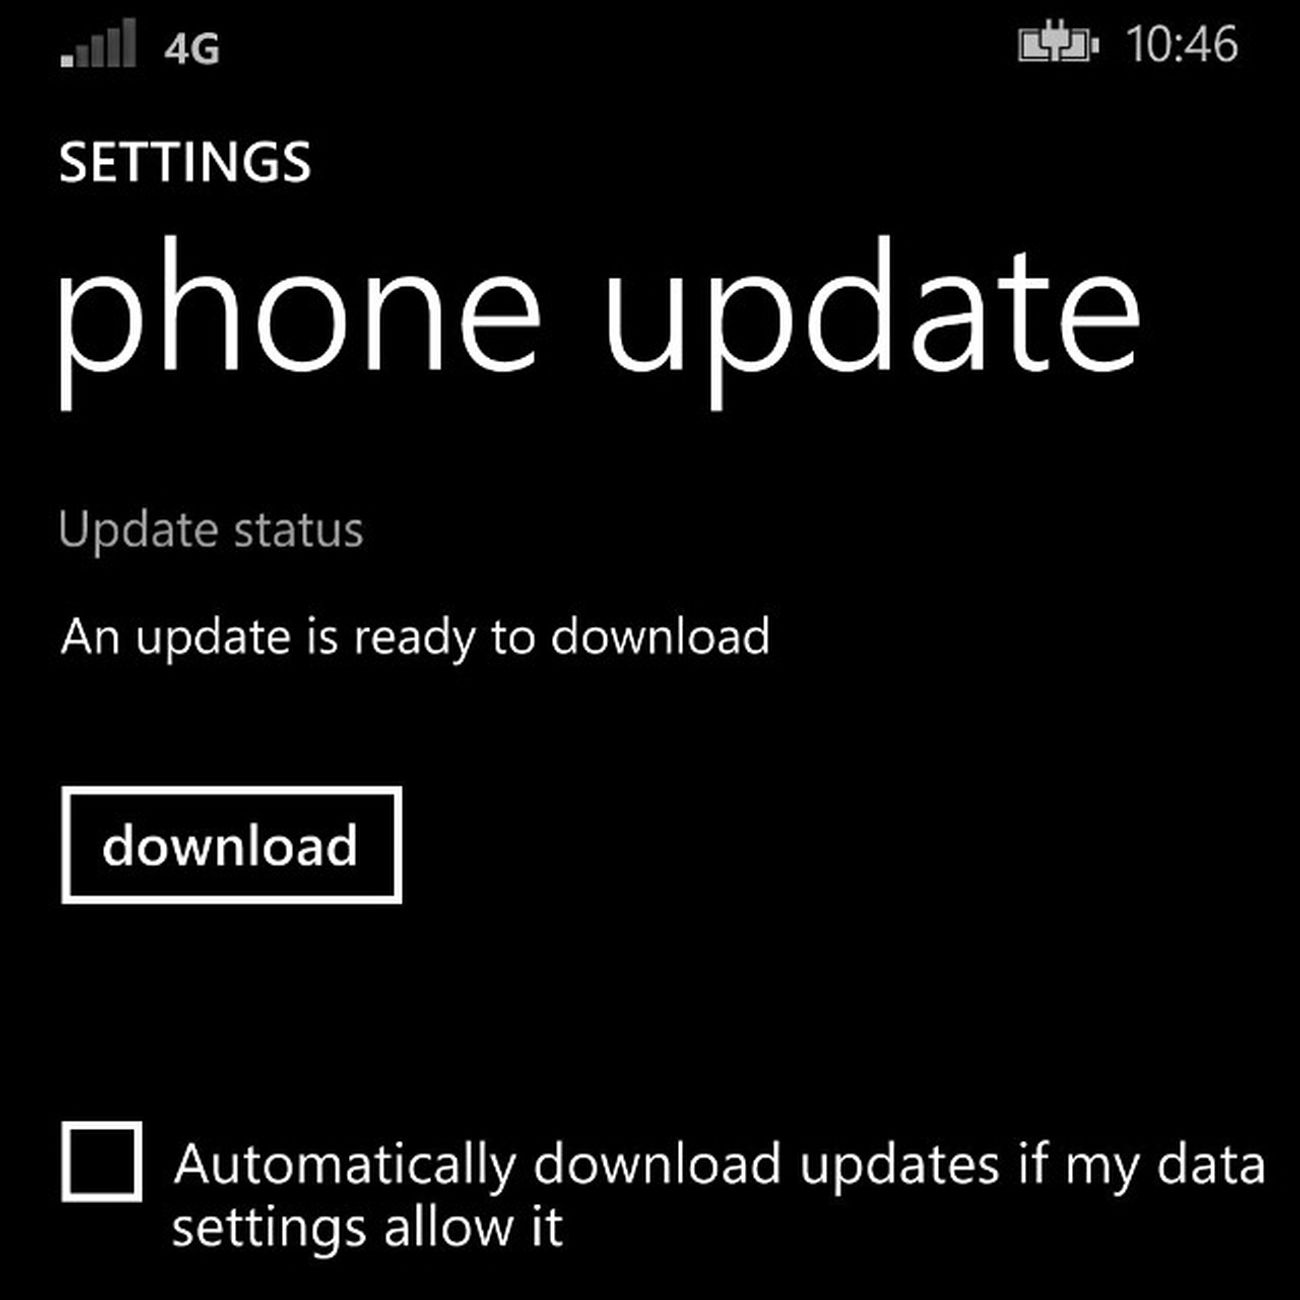 Lumia 930 Previewfordevs Windowsphone 8.1 GDR1